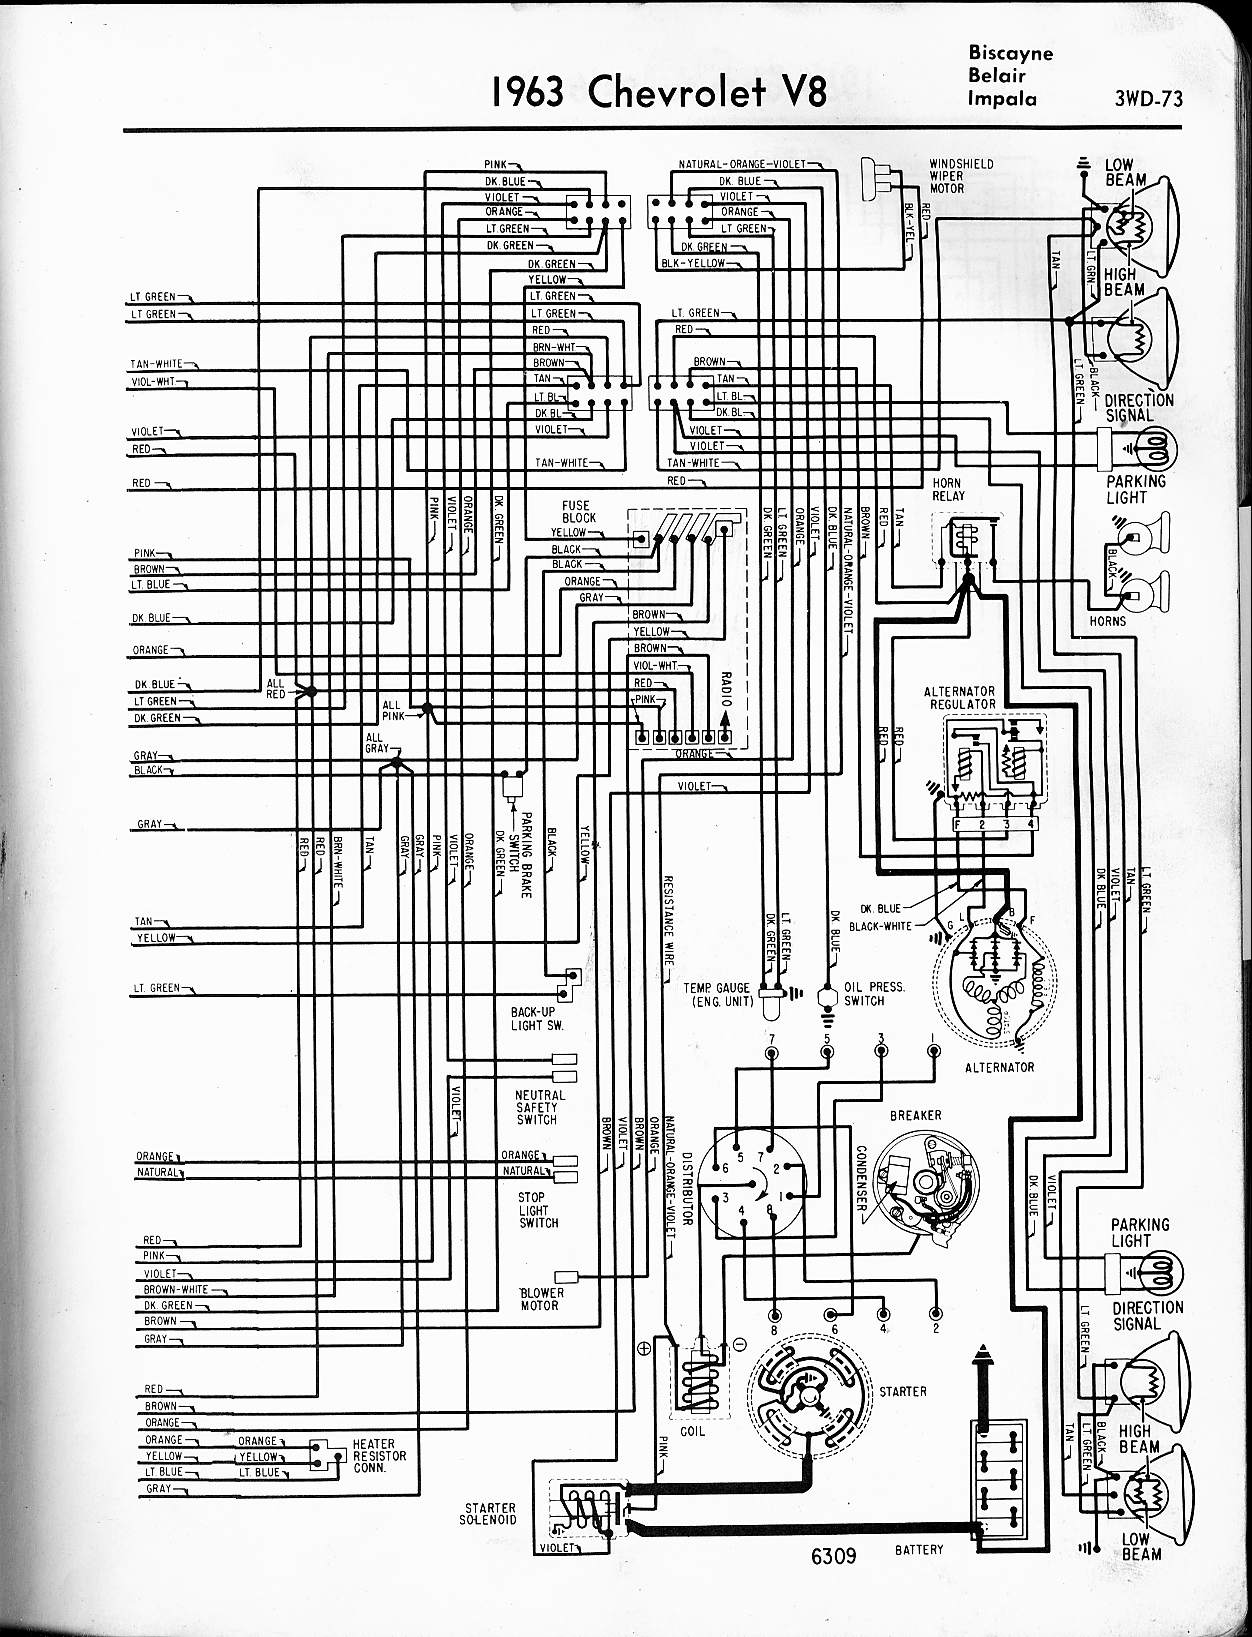 hight resolution of 1963 v8 biscayne belair impala right 57 65 chevy wiring diagrams